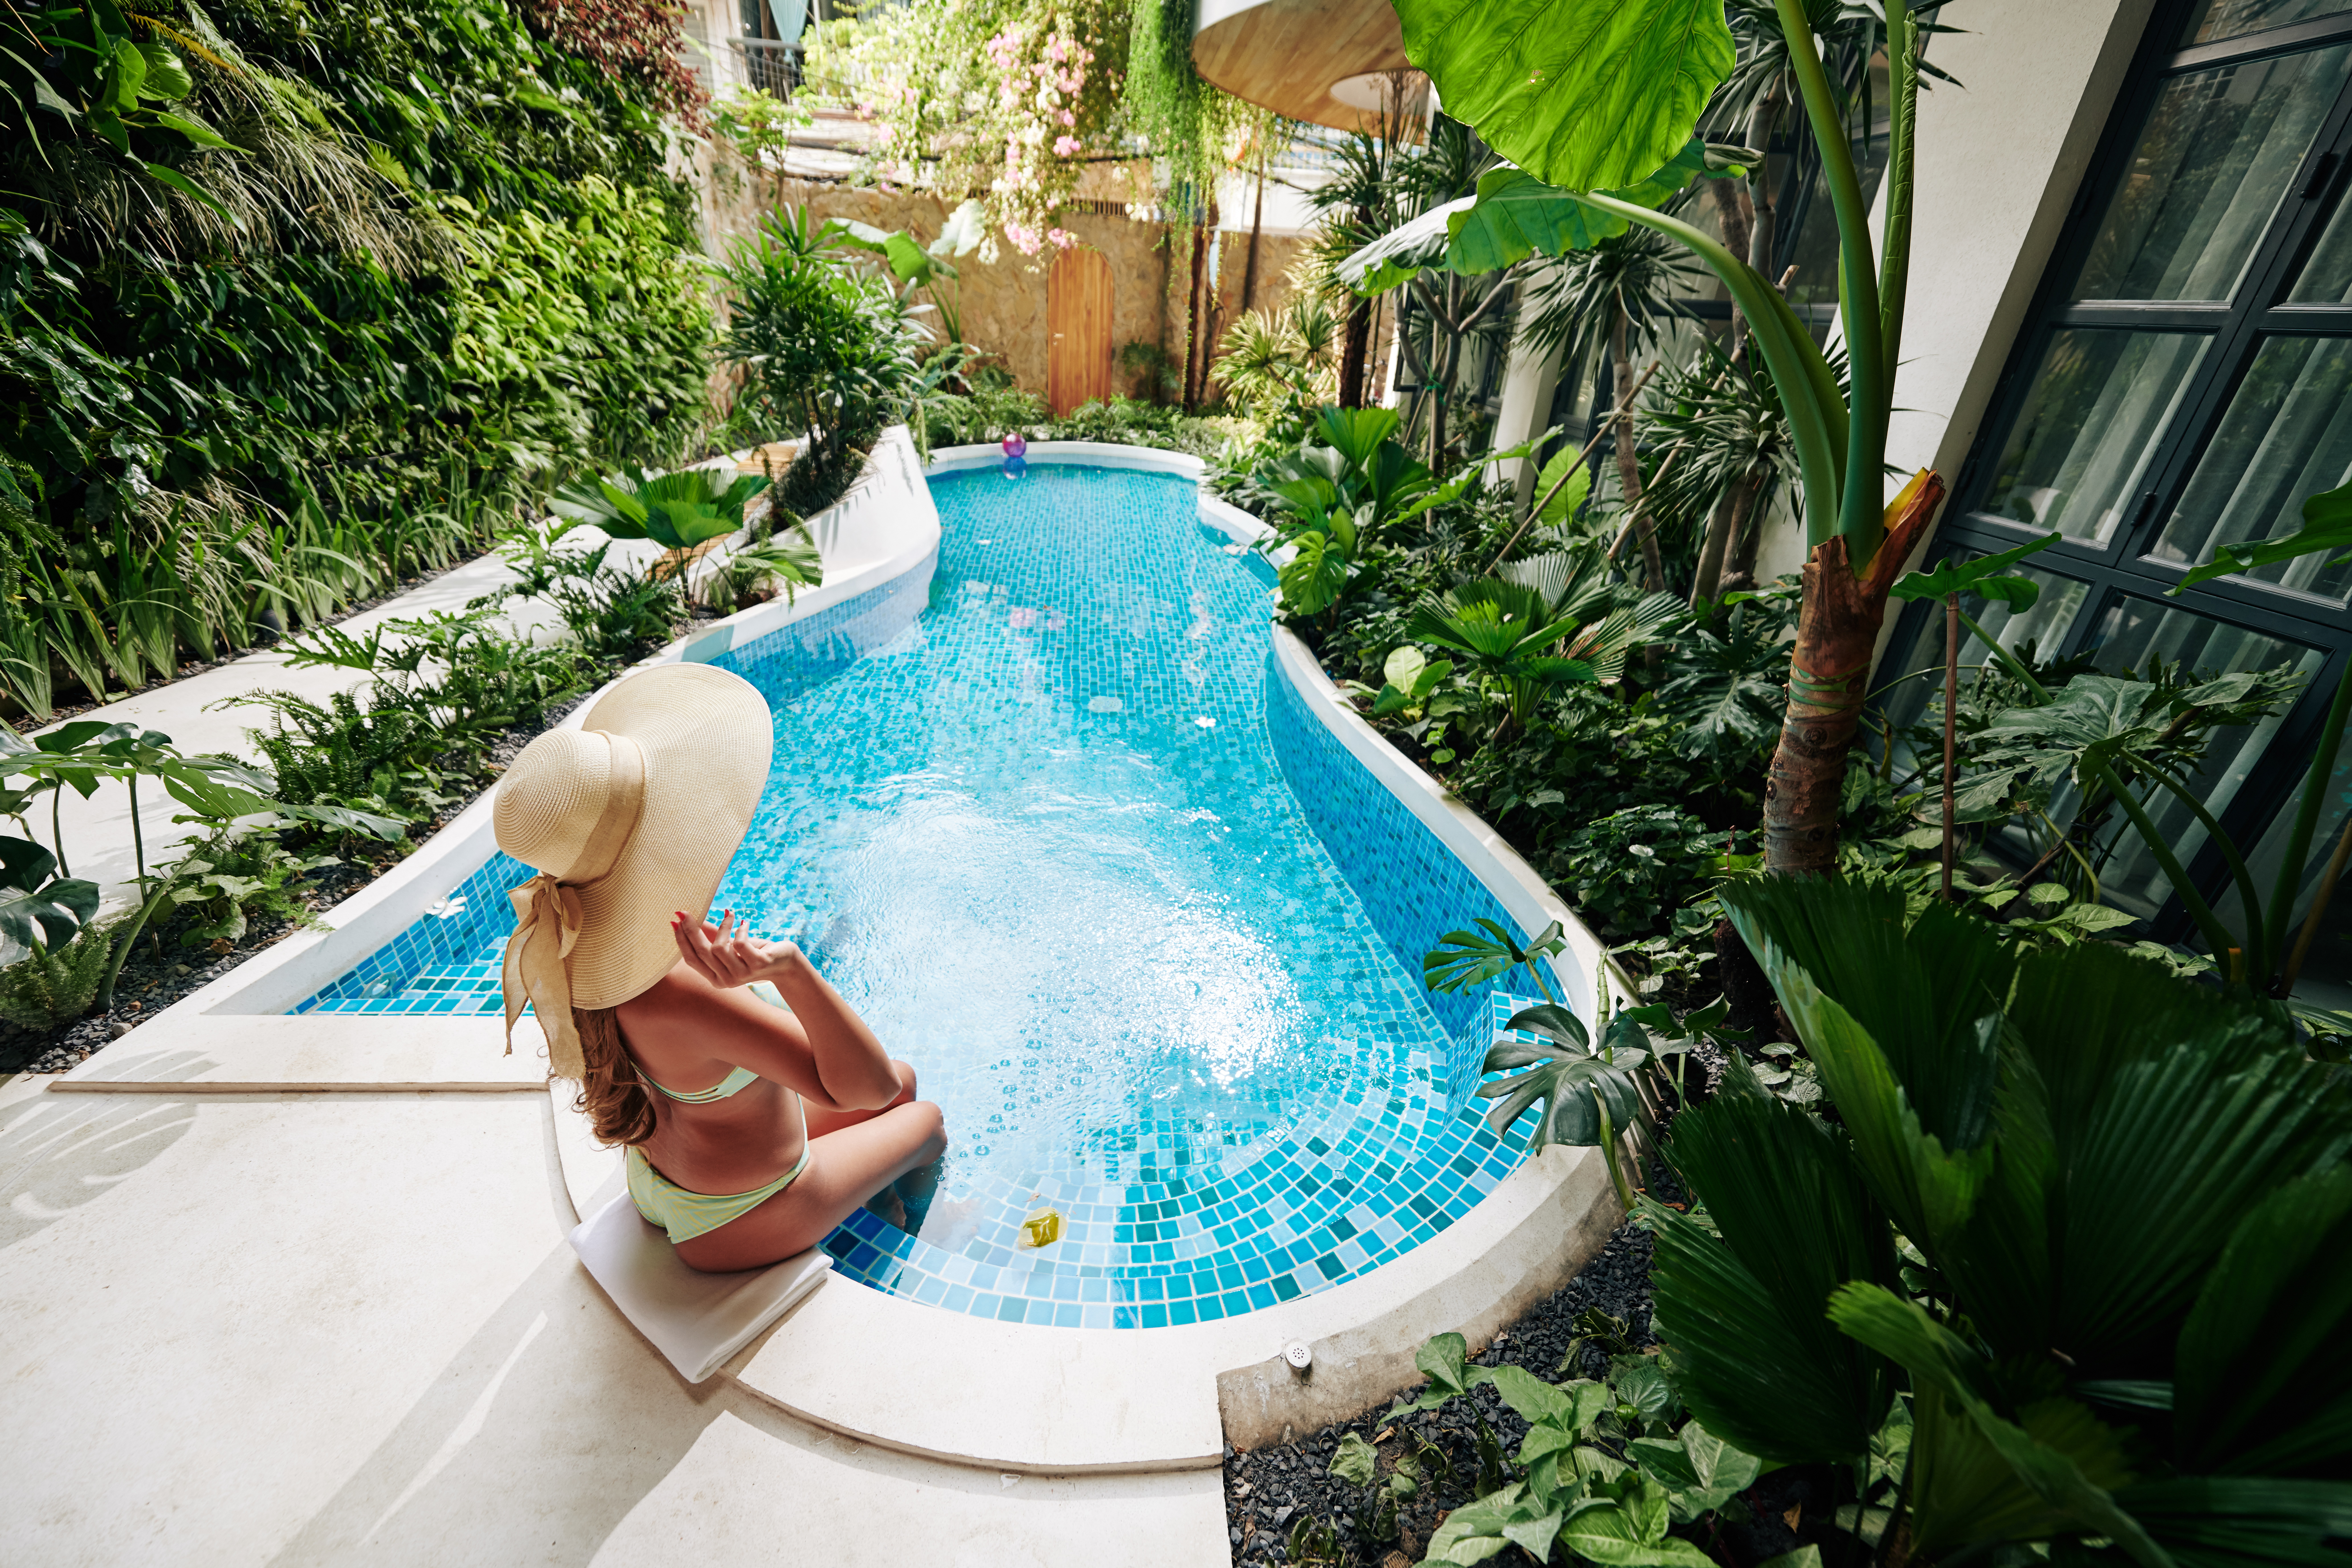 Want a Pool in Your Backyard? Here are Some Things to Consider